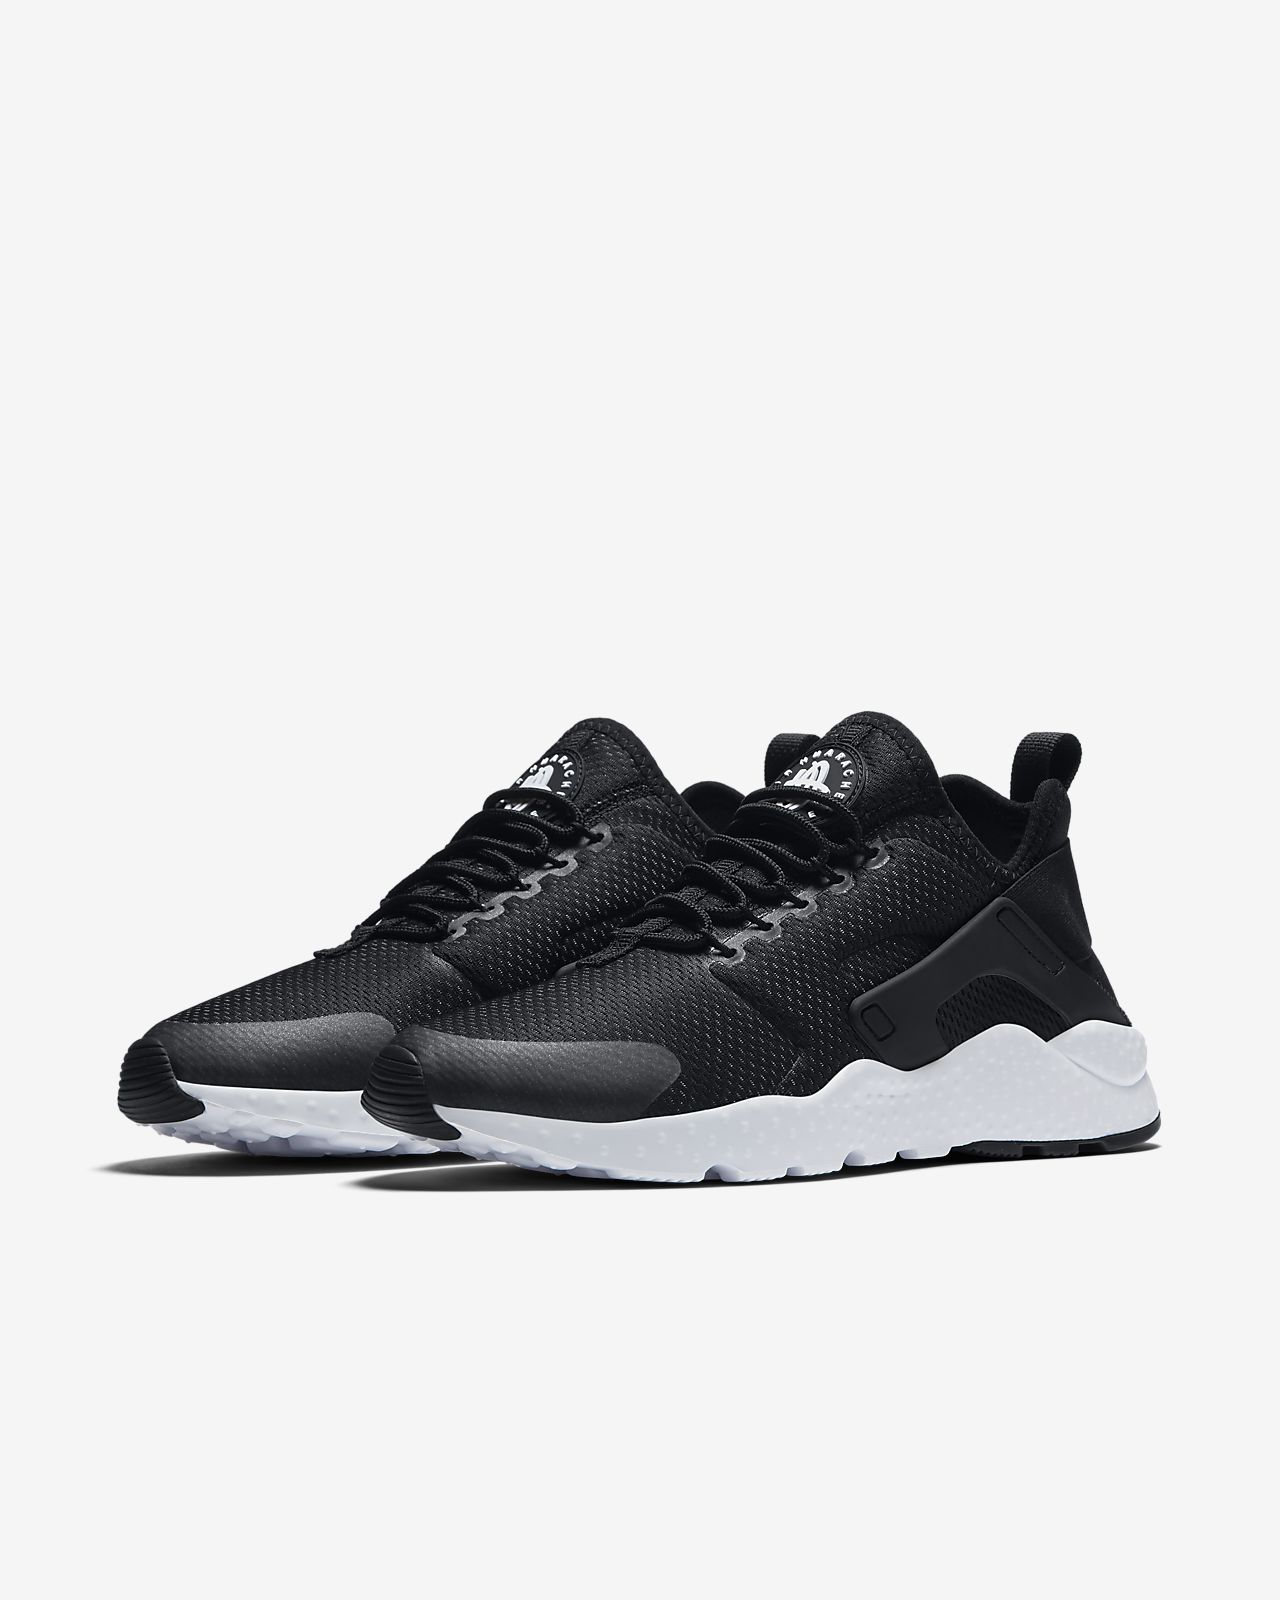 Huarache Women's Air Nike Ultra Shoe 6gb7yIvYfm